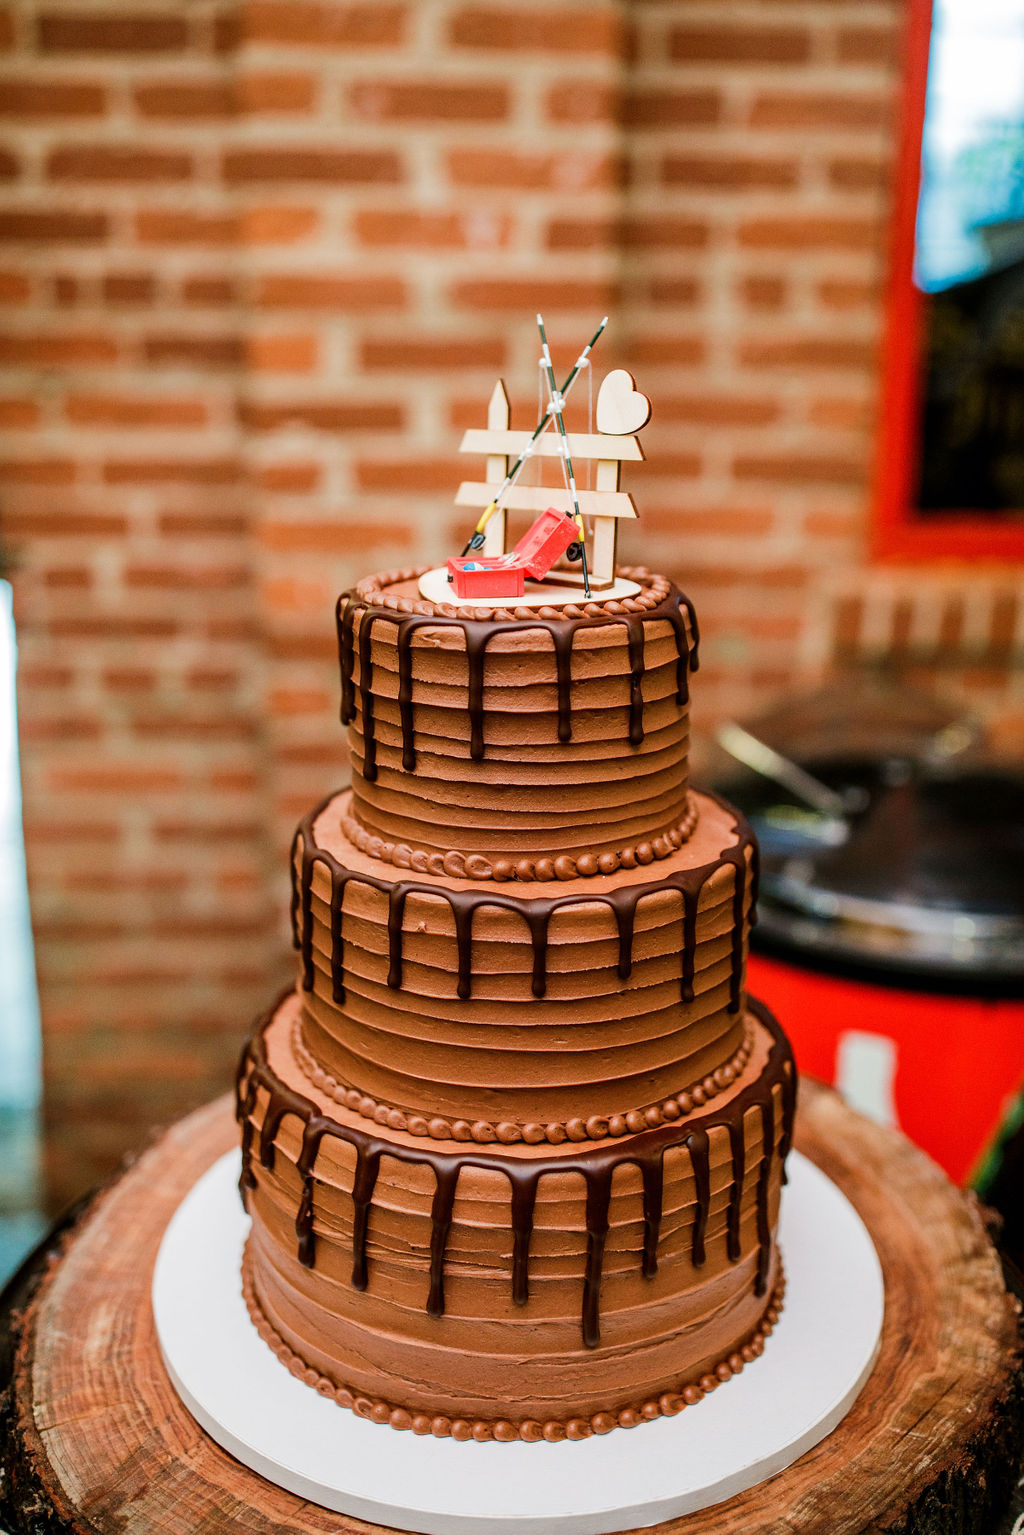 Chocolate drip wedding cake: Wedding at The Mill captured by John Myers Photography featured on Nashville Bride Guide